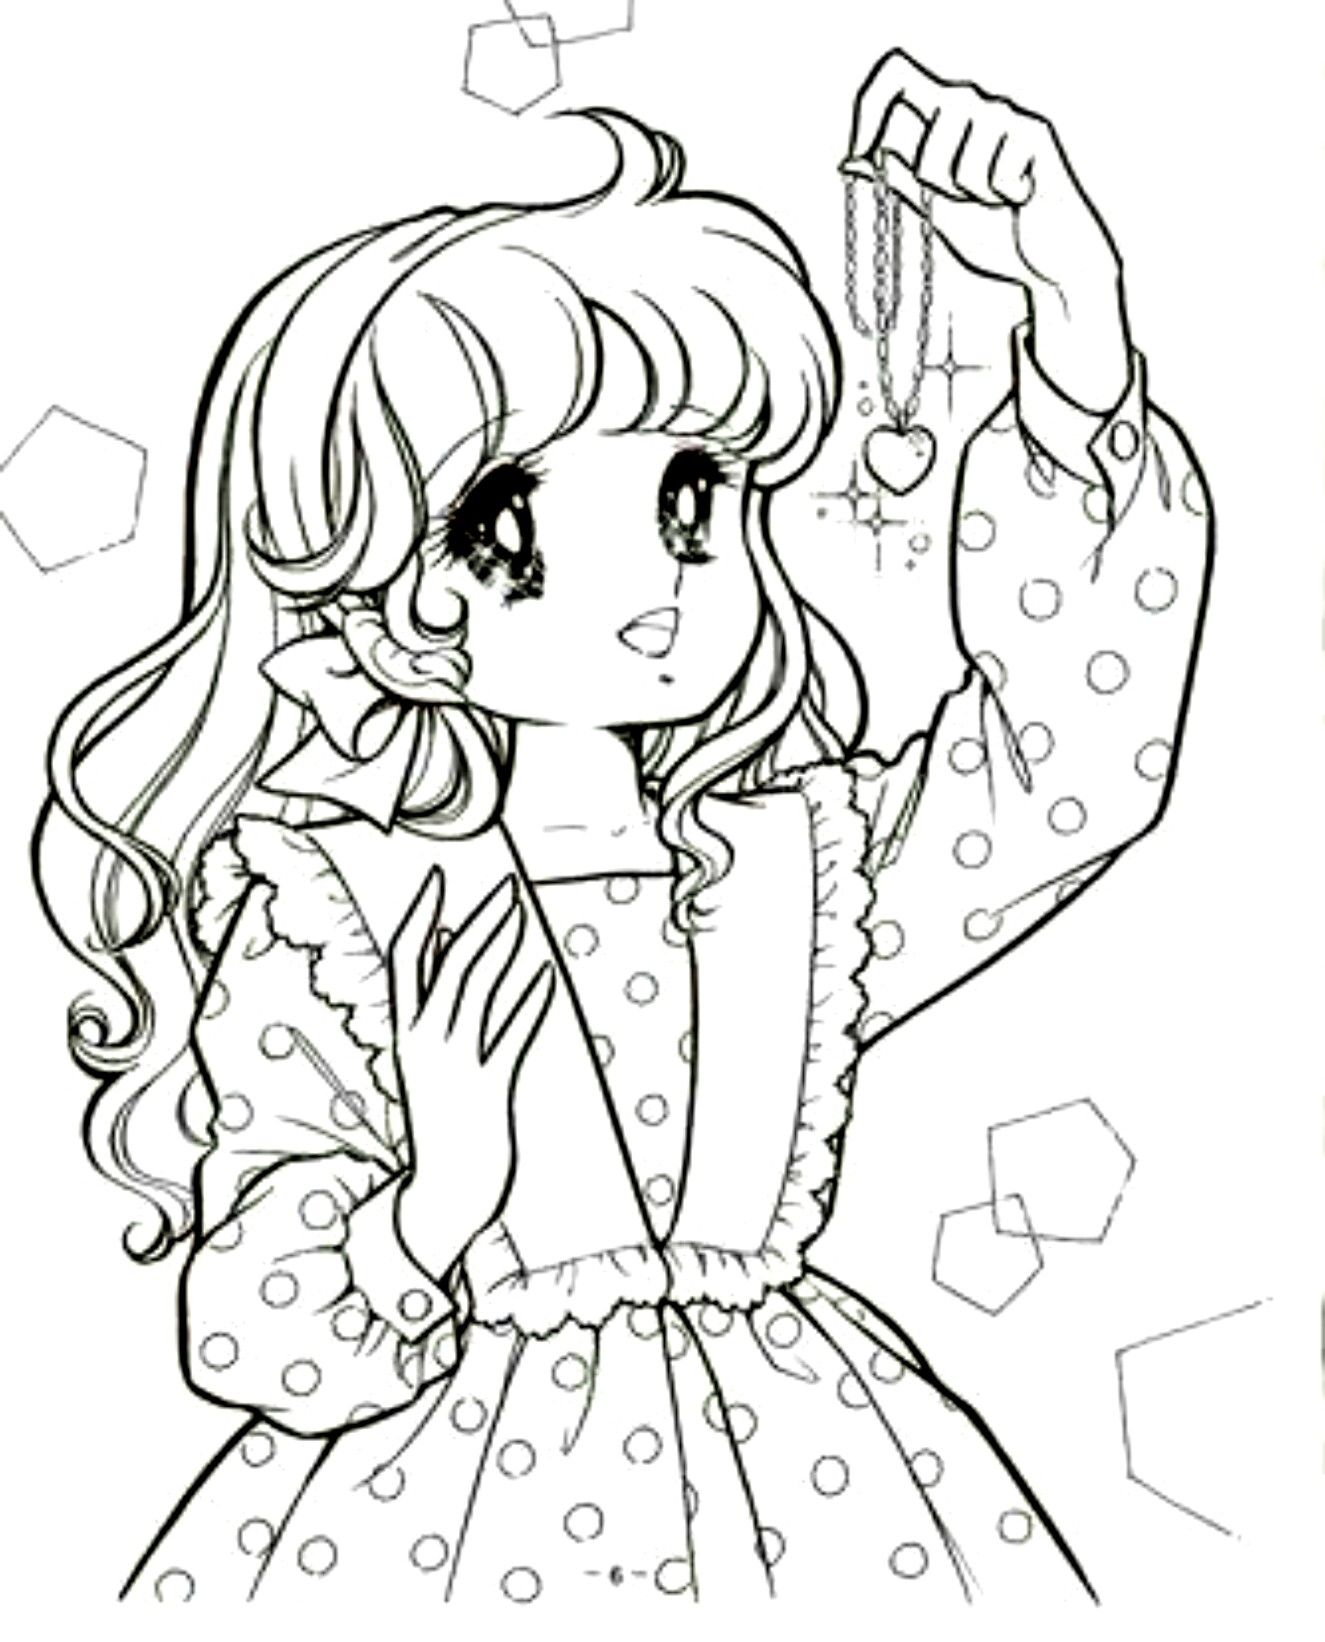 Pin By Fabiola Meaurio On تلوين In 2020 Coloring Books Coloring Pages Colouring Pages